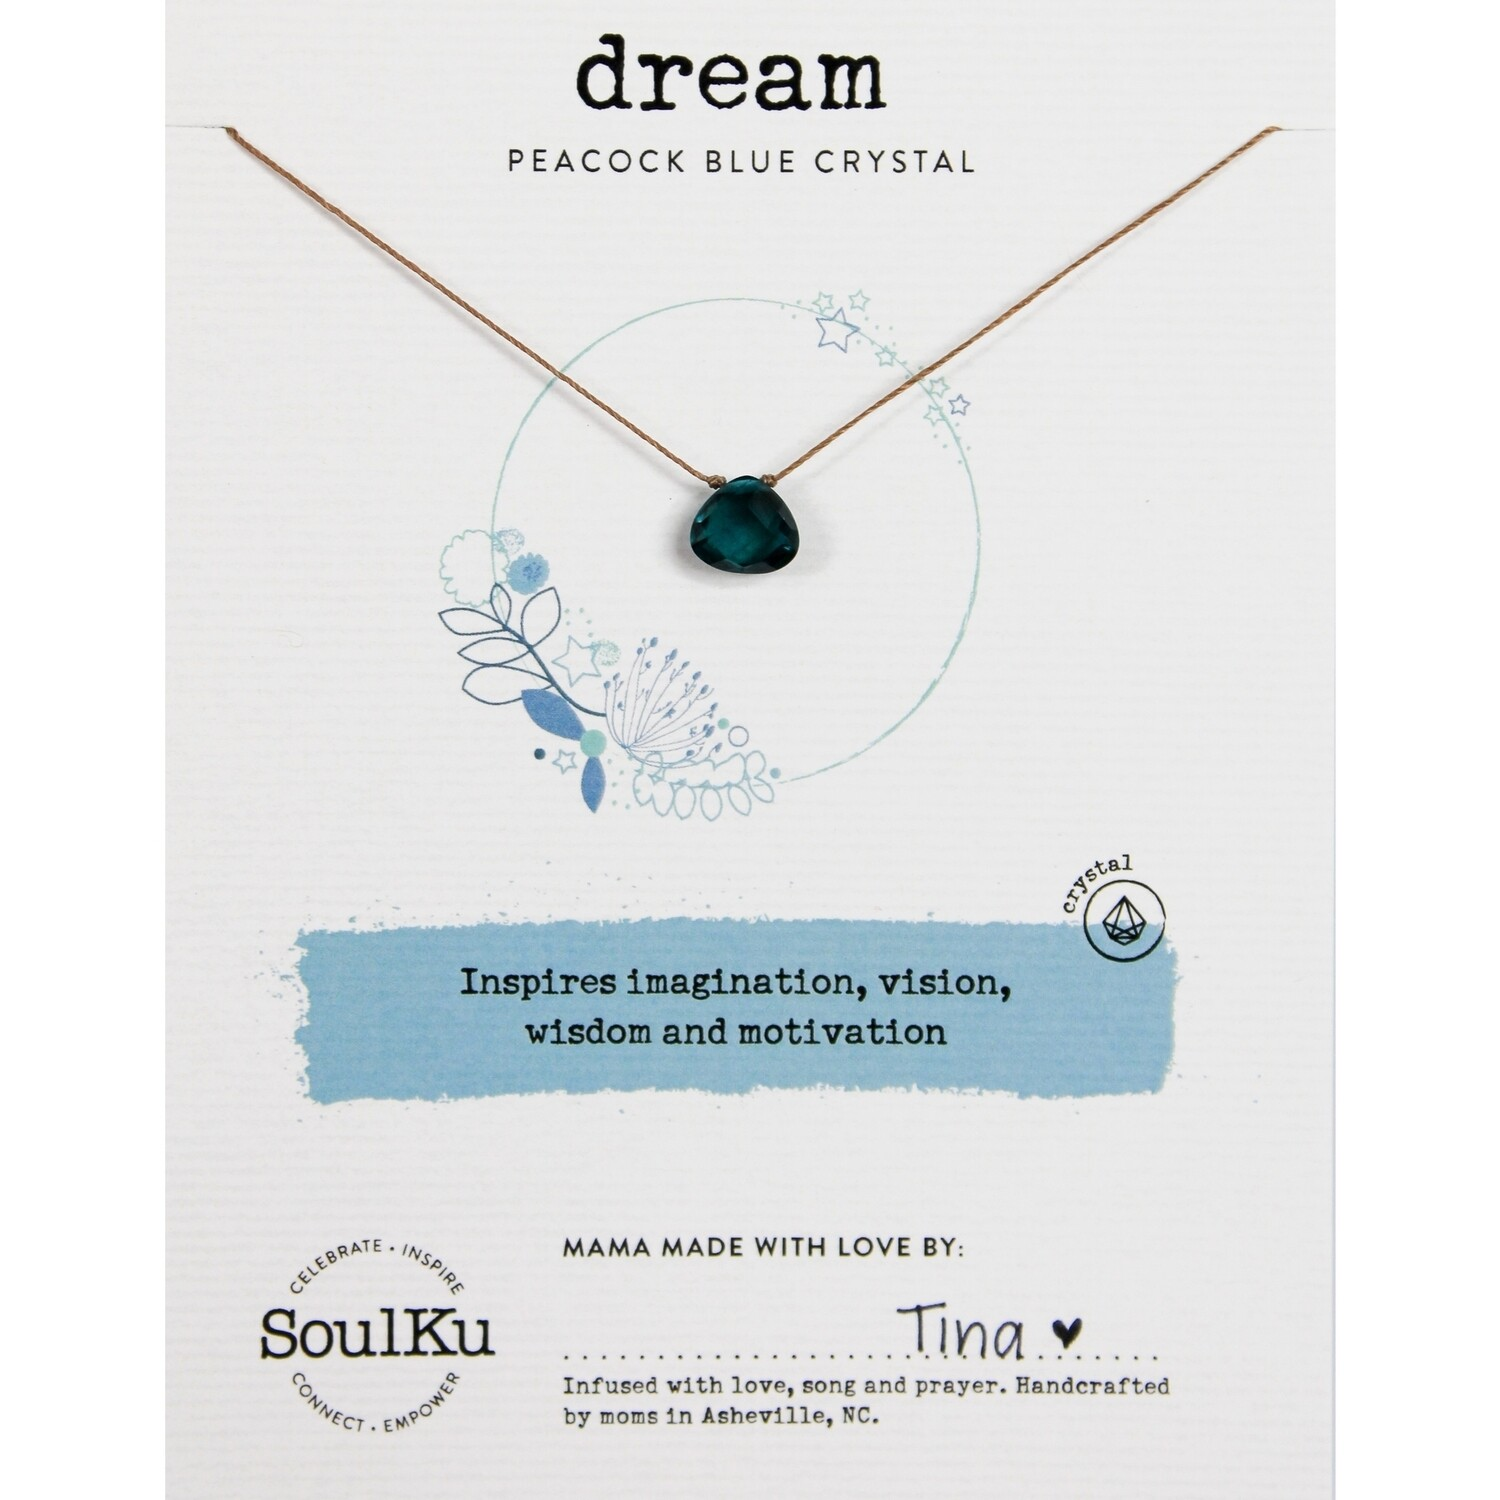 Dream: Peacock Blue Crystal Necklace